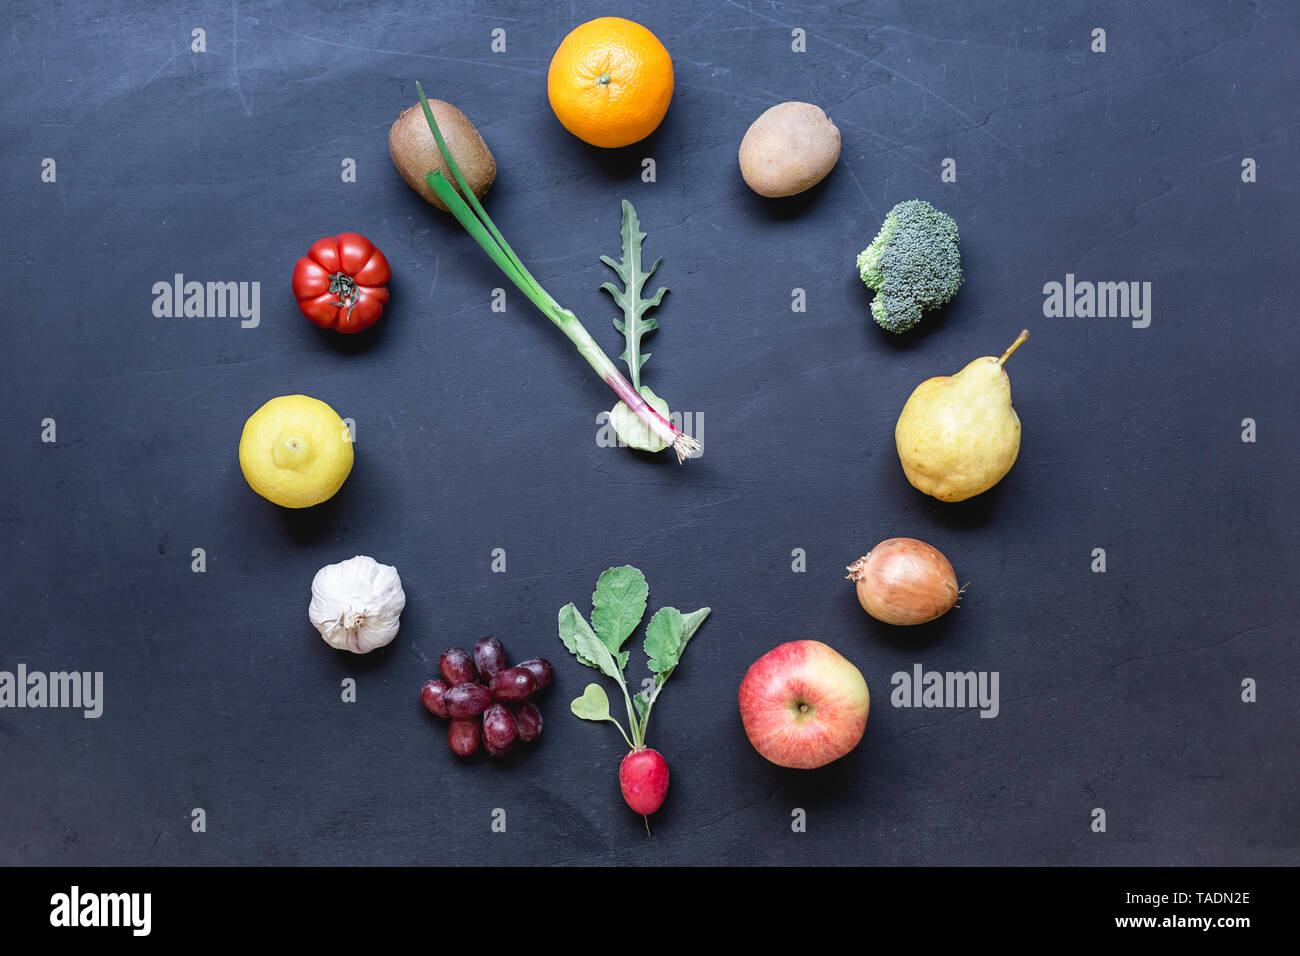 Fruits and vegetables buliding clock on dark ground - Stock Image